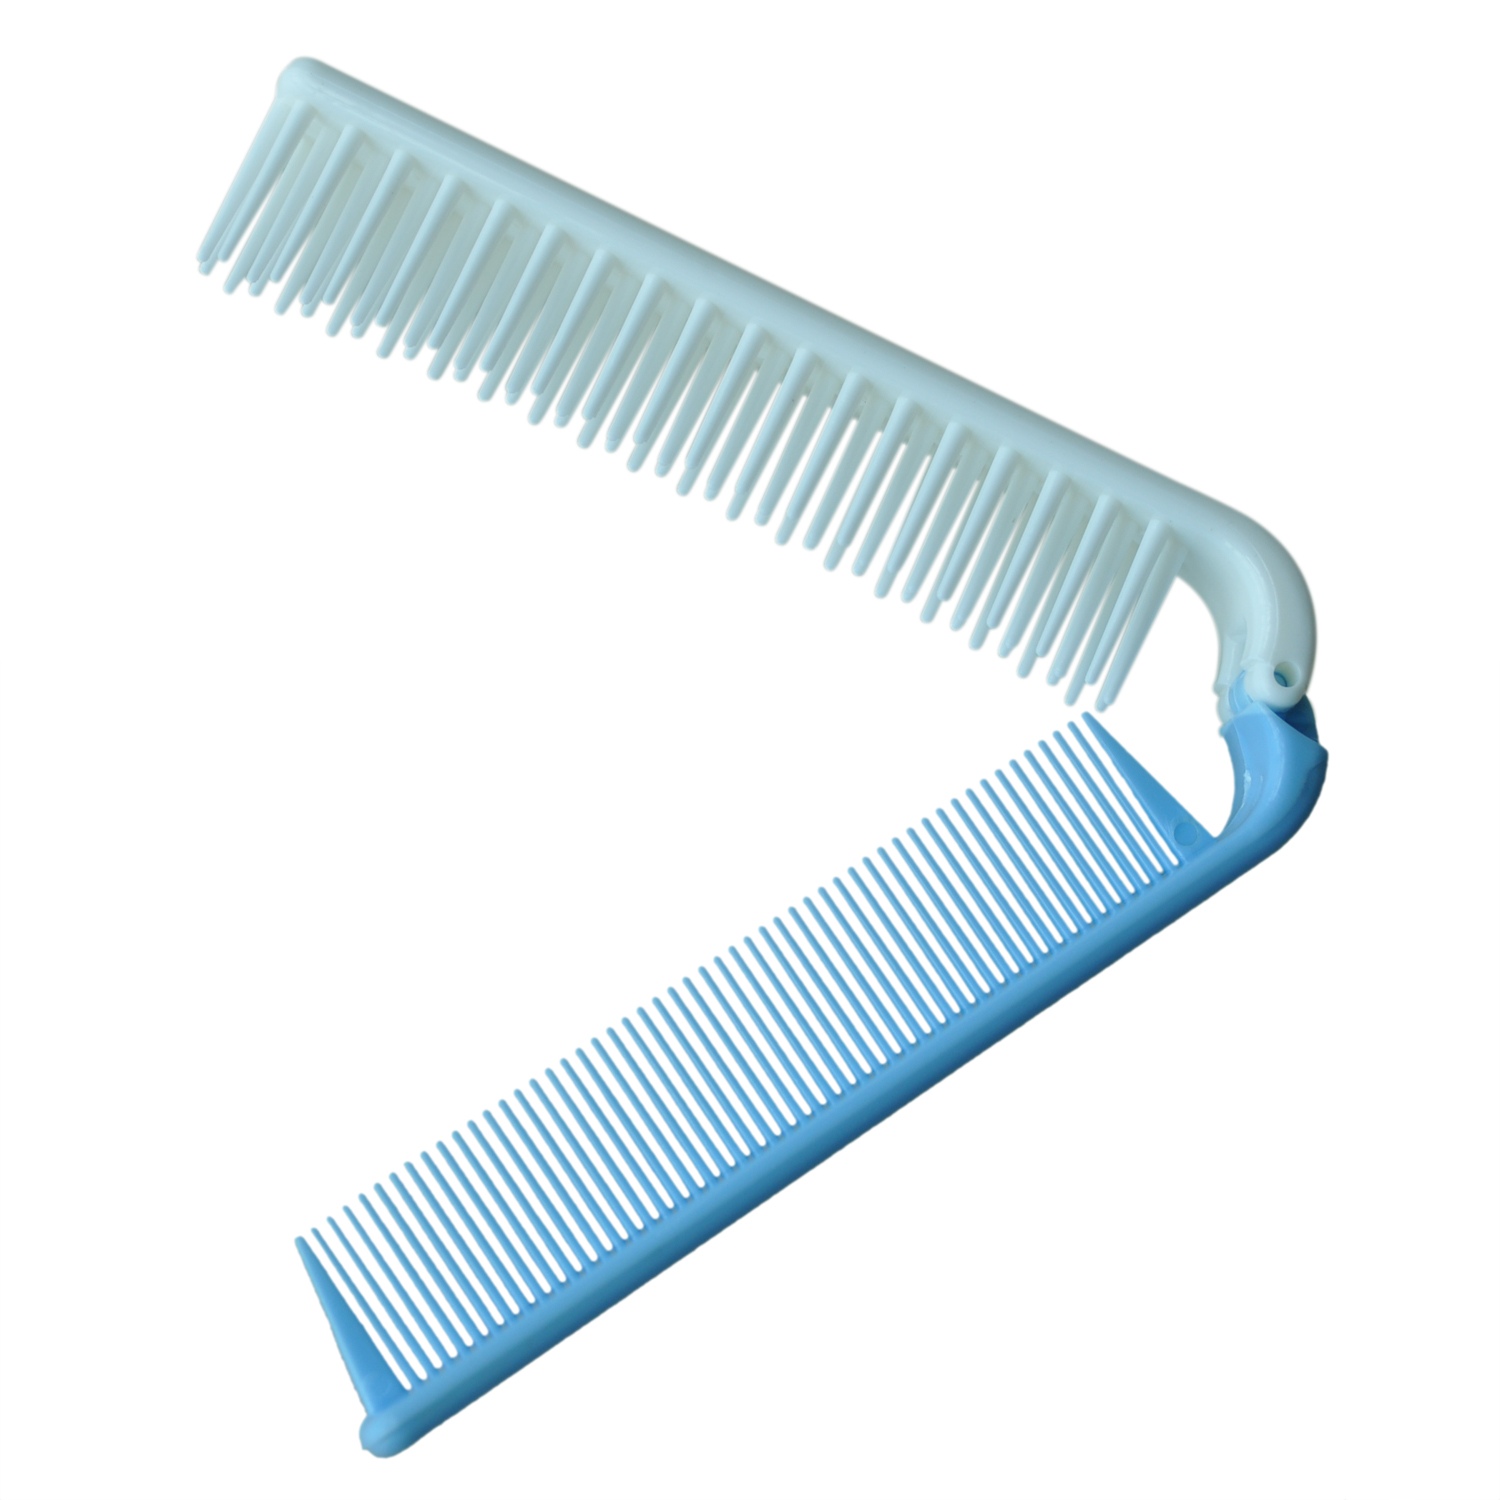 Travel Skyblue Coarse Teeth Folding Dual Hair Brush Pocket Comb 7.4 Length